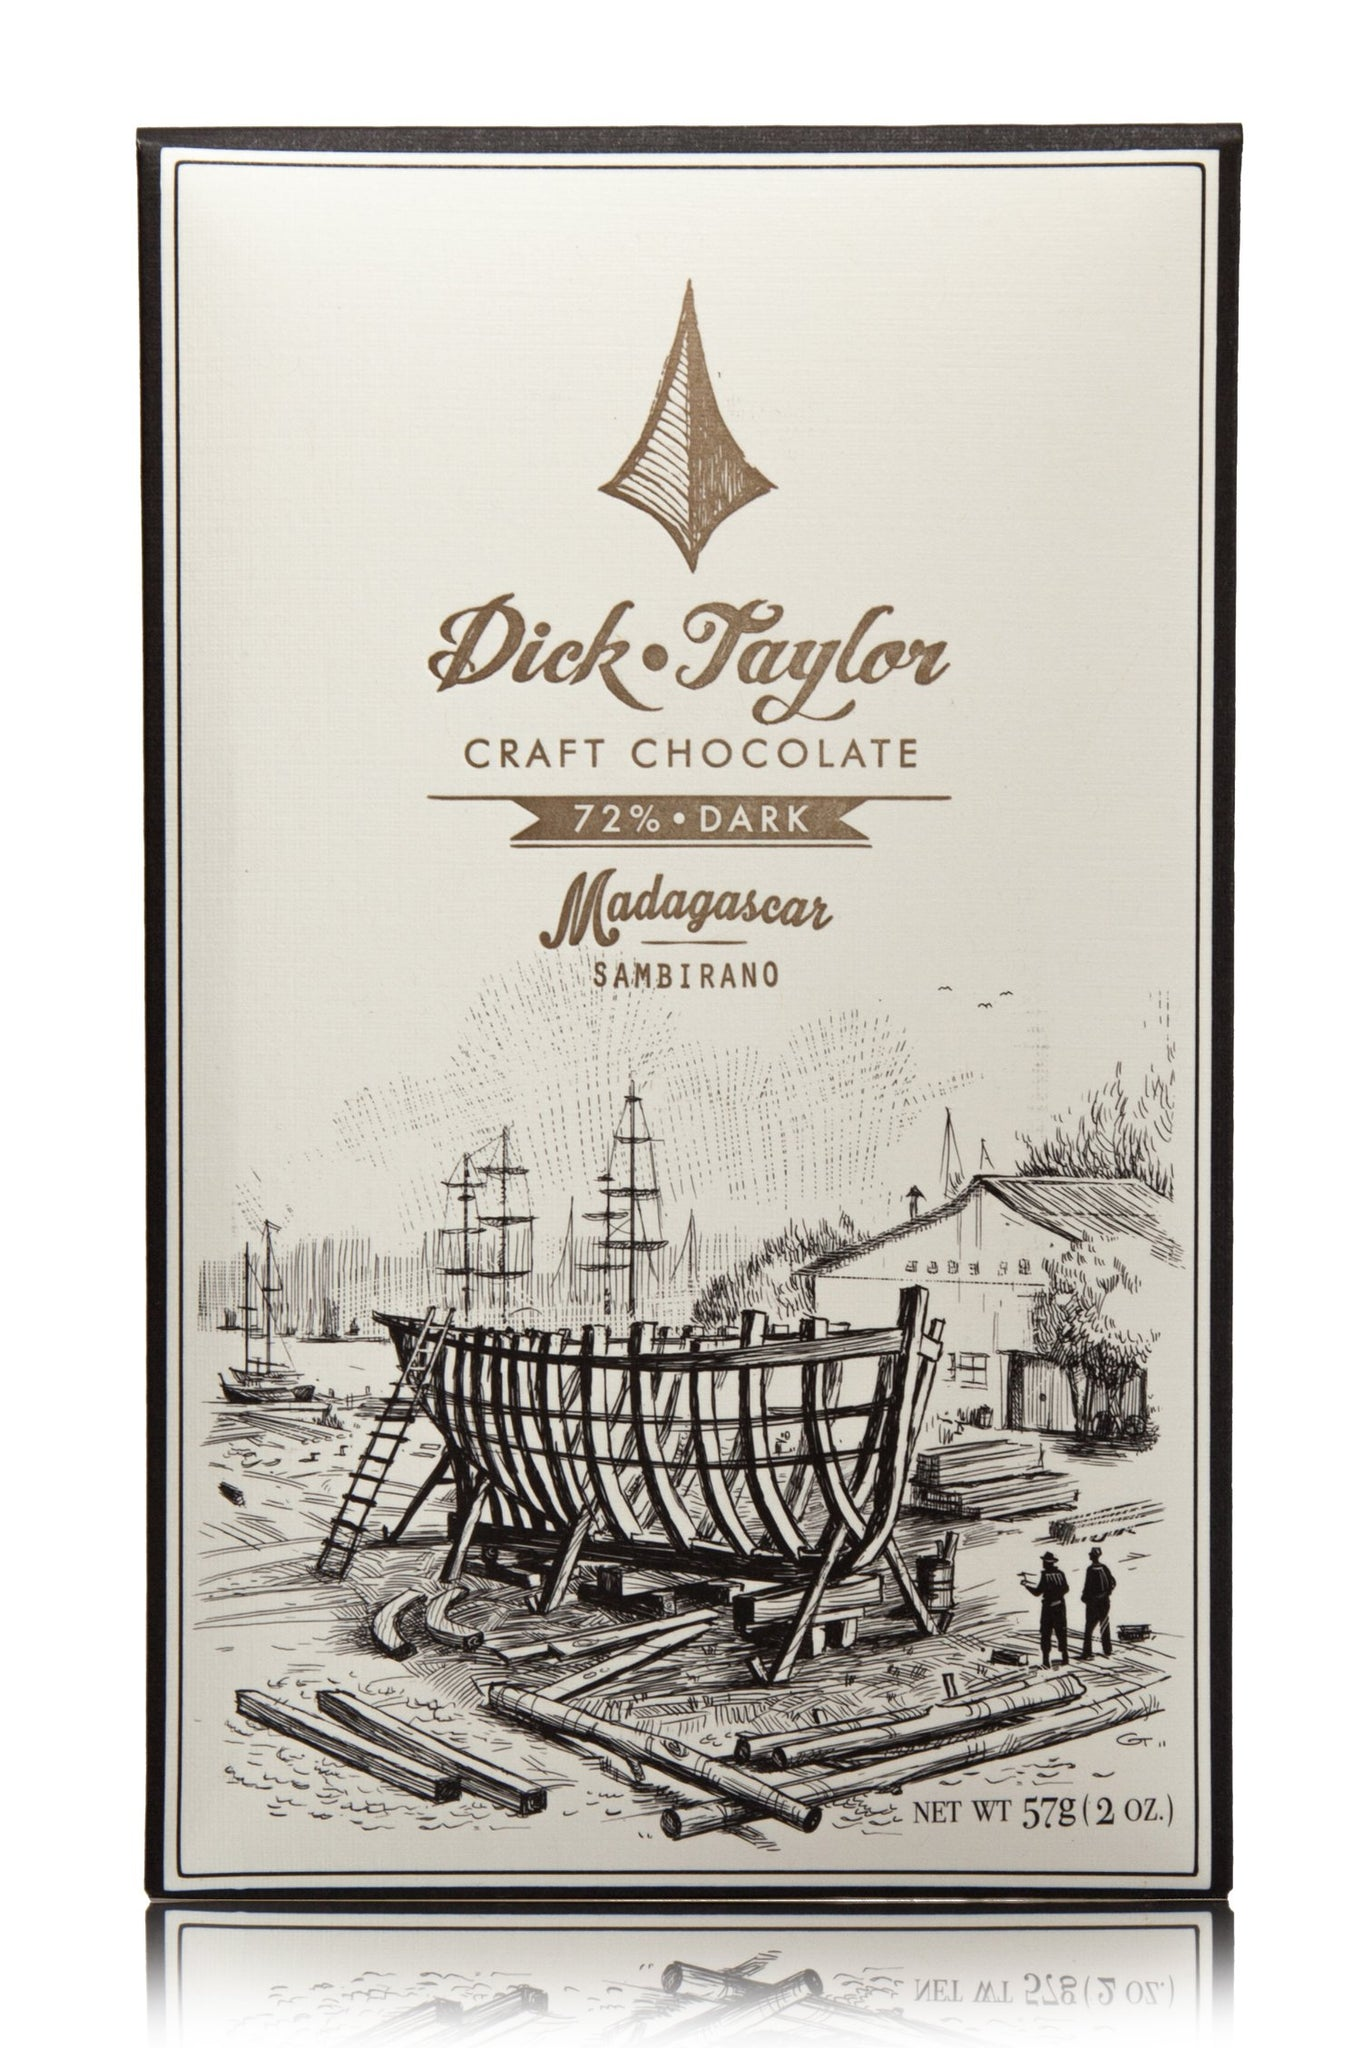 Dick Taylor 72% Dark Madagascar